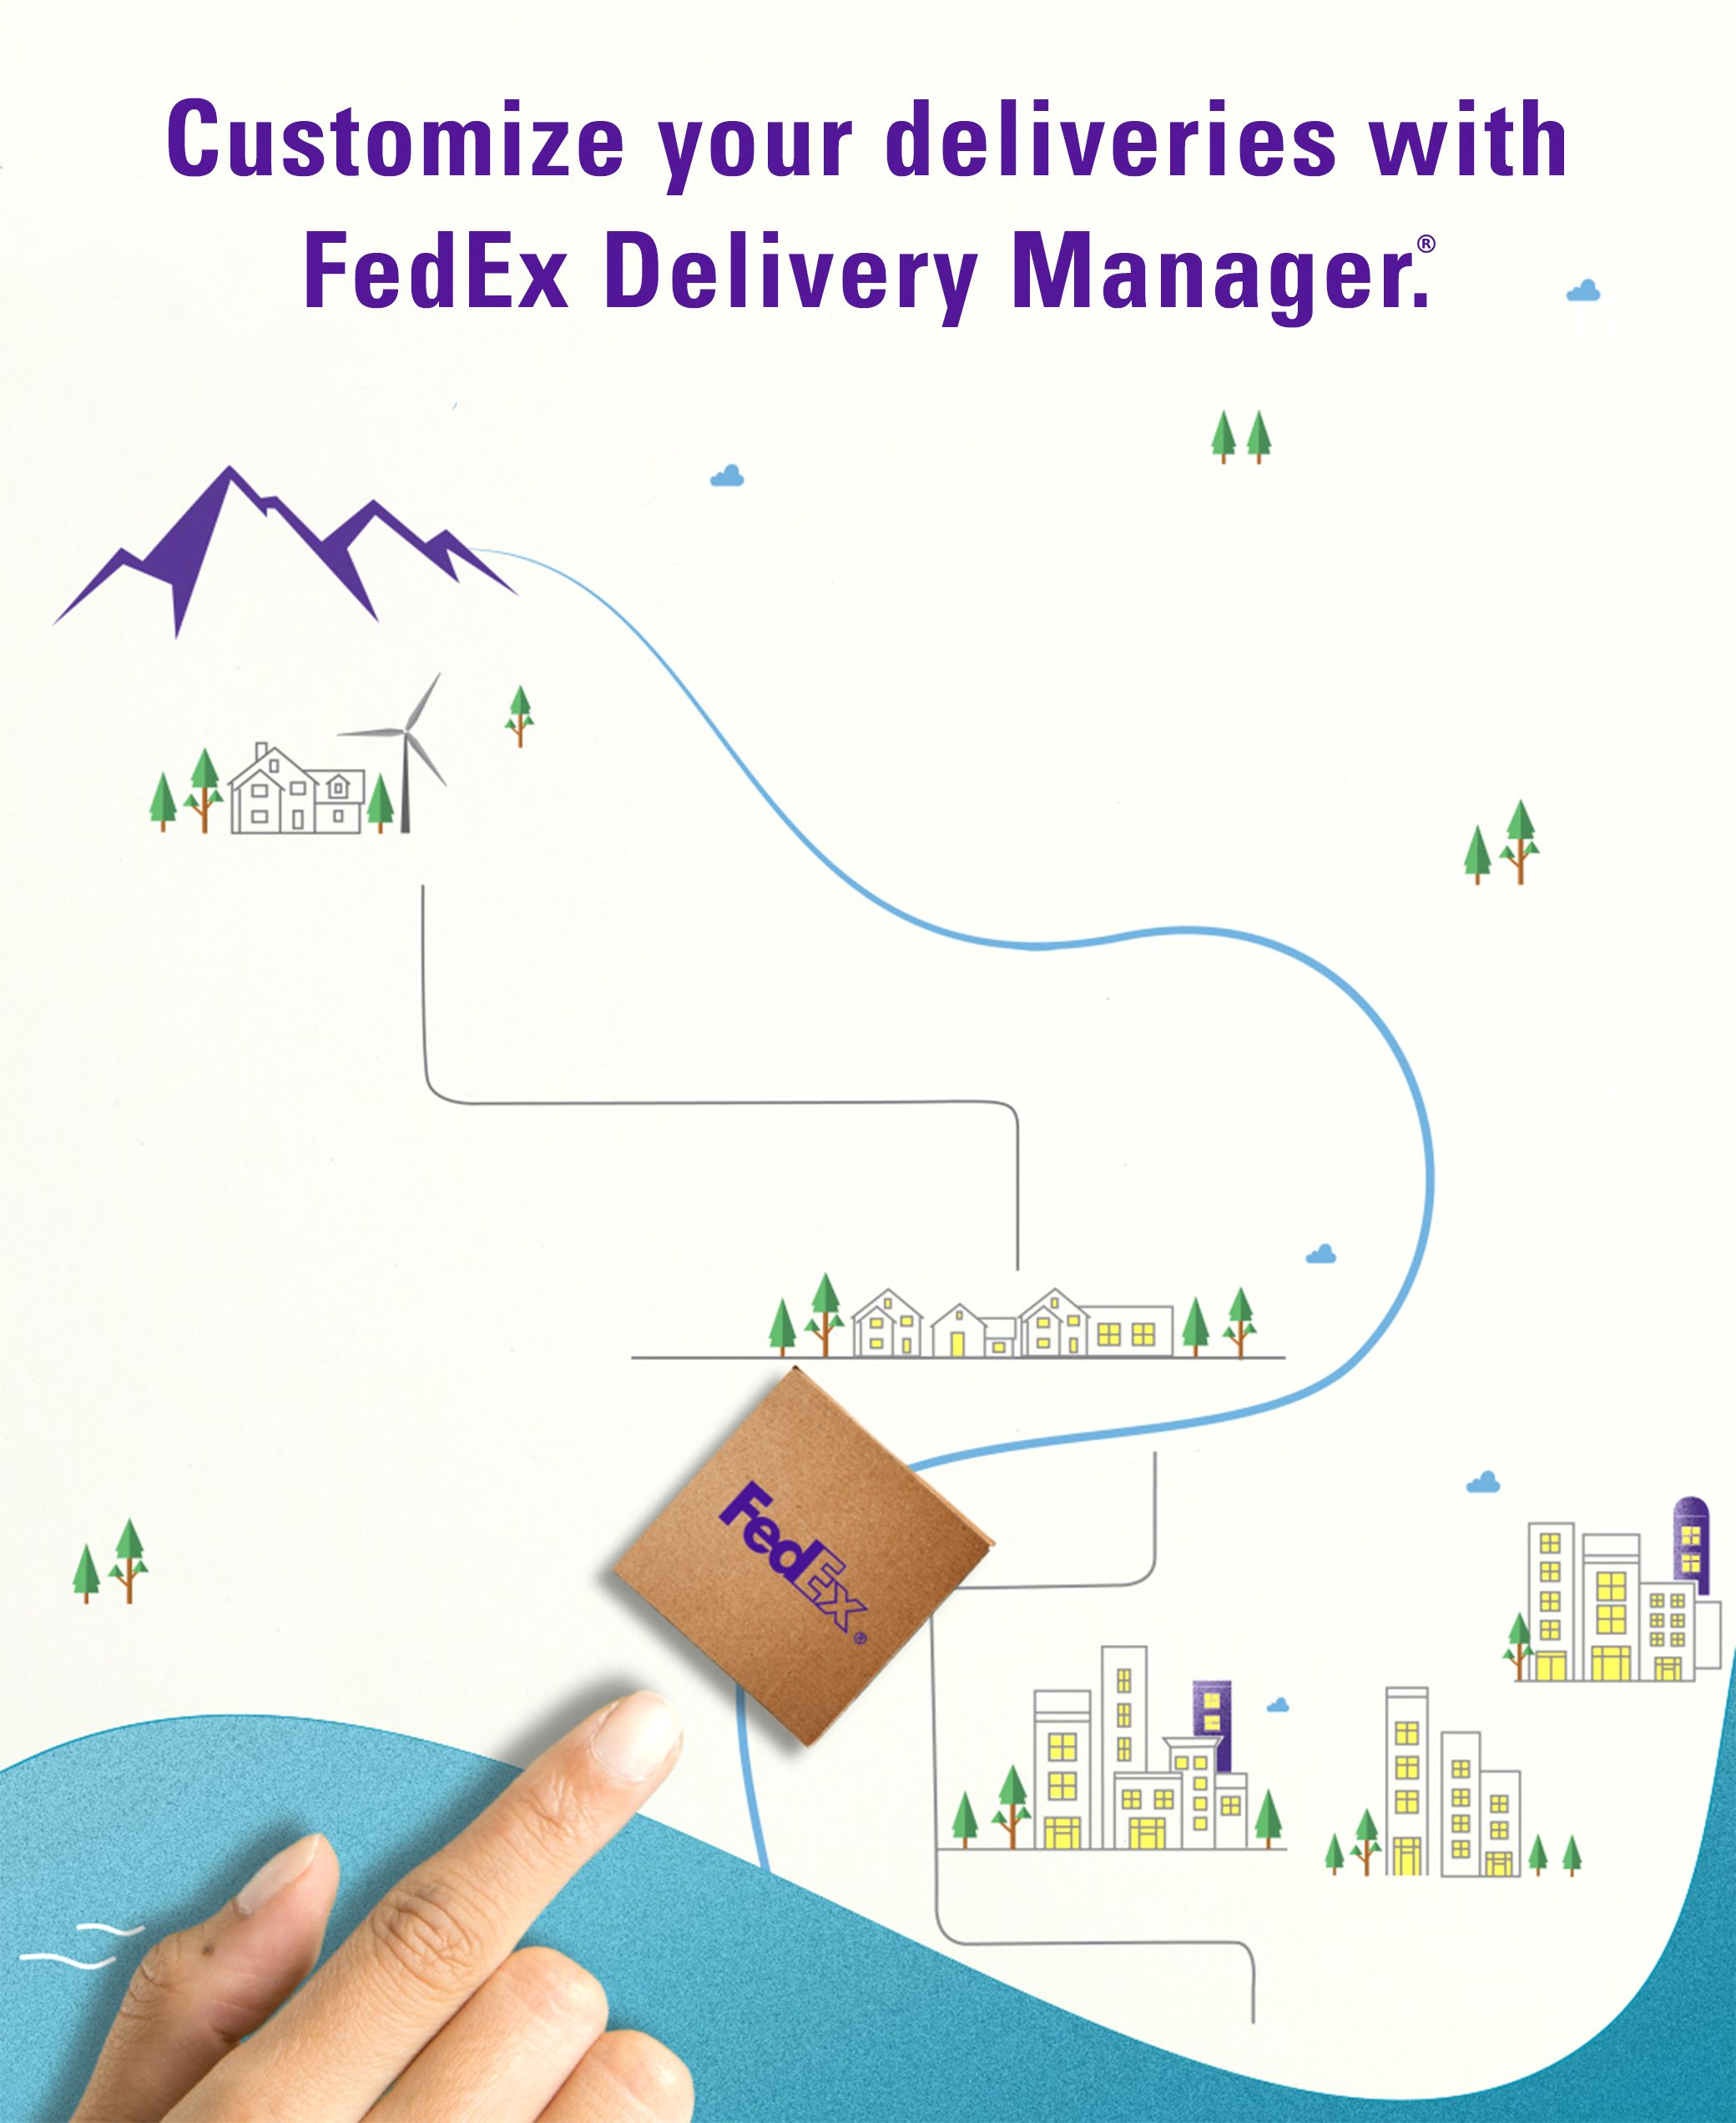 You have better things to worry about  Your delivery shouldn